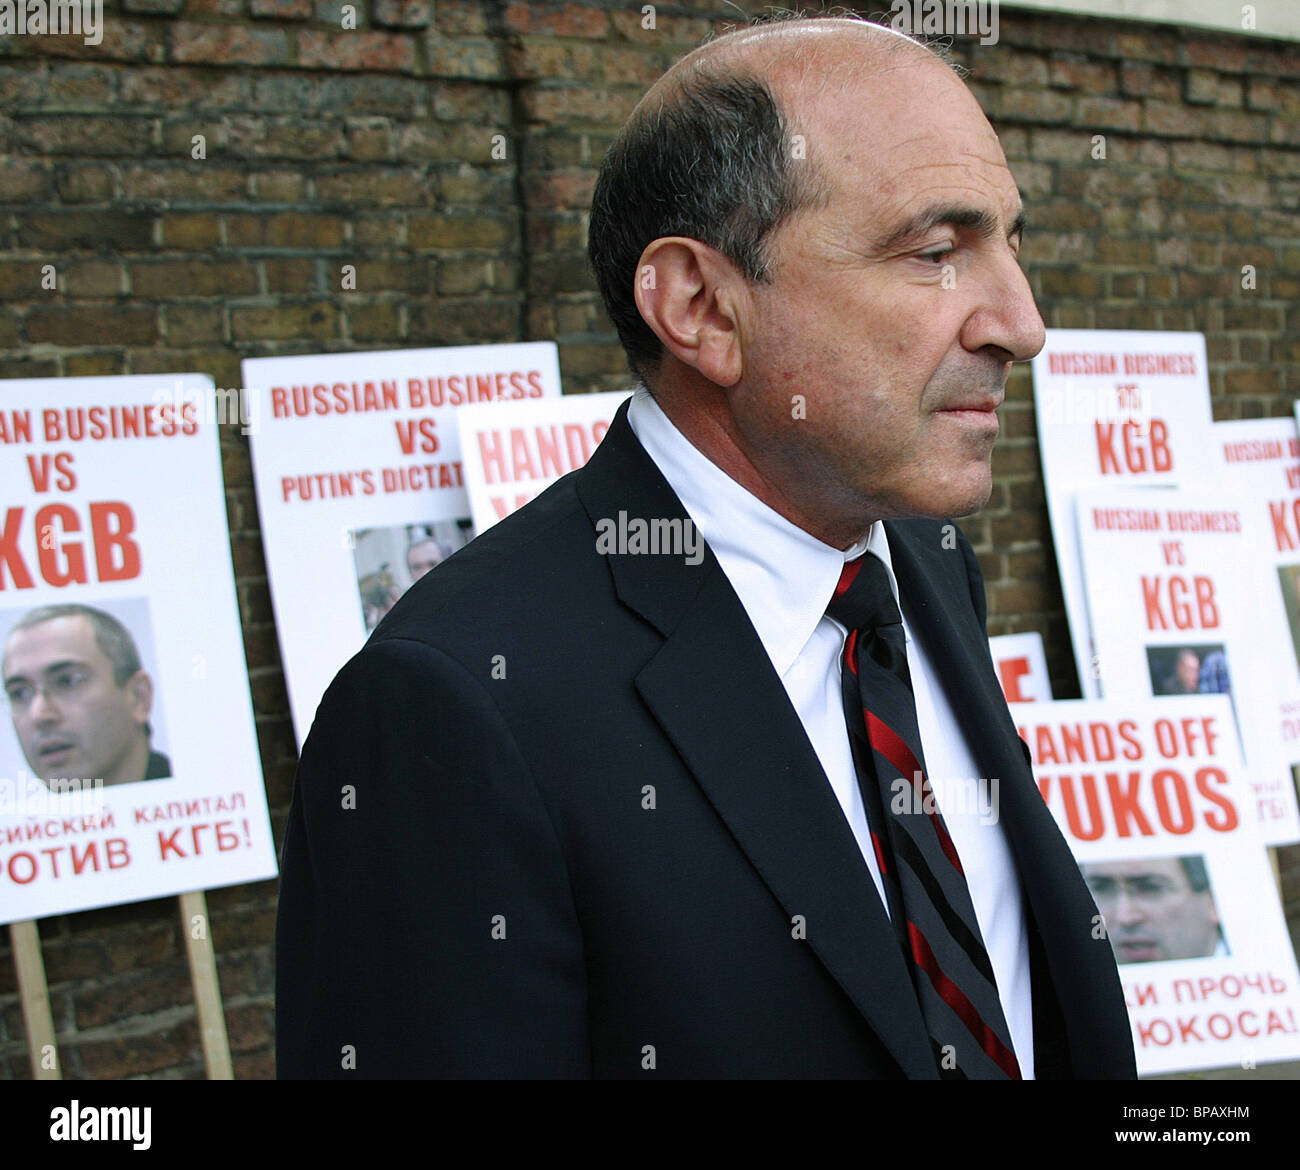 An action organized by Berezovsky in front the Russian consulate - Stock Image